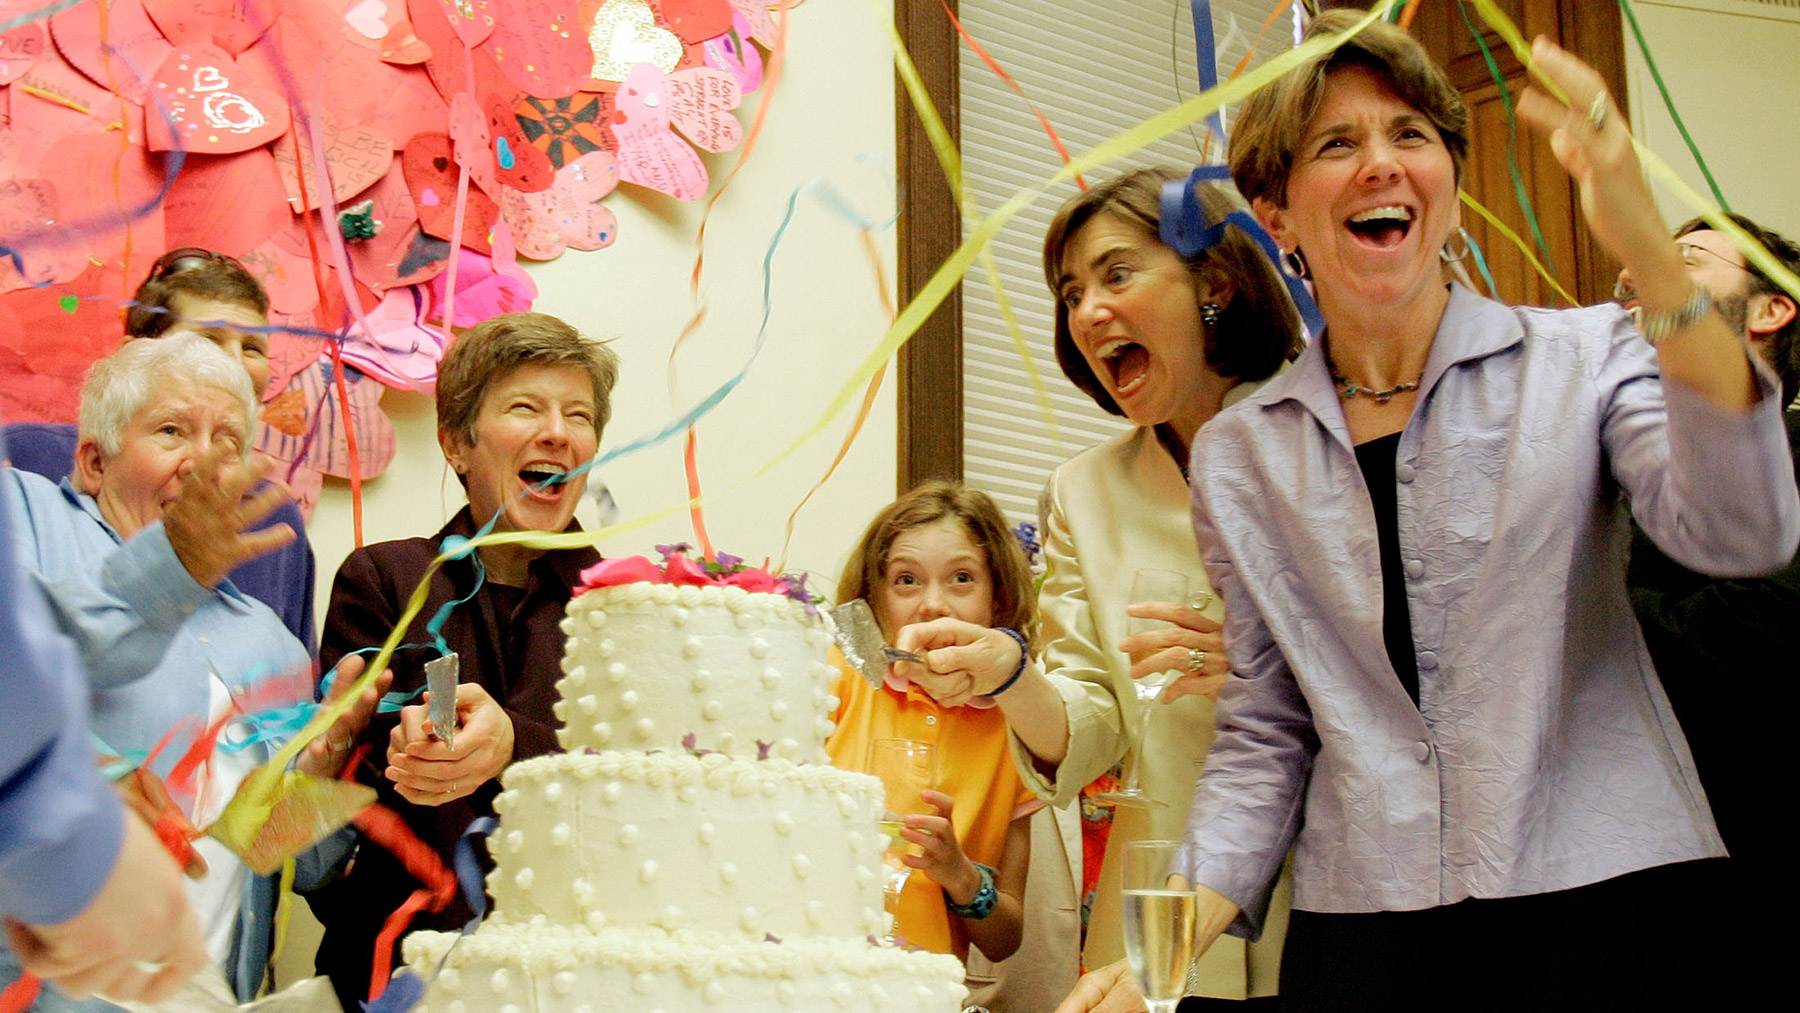 Original Plaintiff couples (R-L) Hillary and Julie Goodridge, their daughter Annie, 9, lawyer Mary Bonauto and an unidentified couple react as streamers are set off during a First Year Anniversary Celebration of the legalization of Gay Marriage at Unitarian Universalist Association Headquarters in Boston, Massachusetts, May 17, 2005.